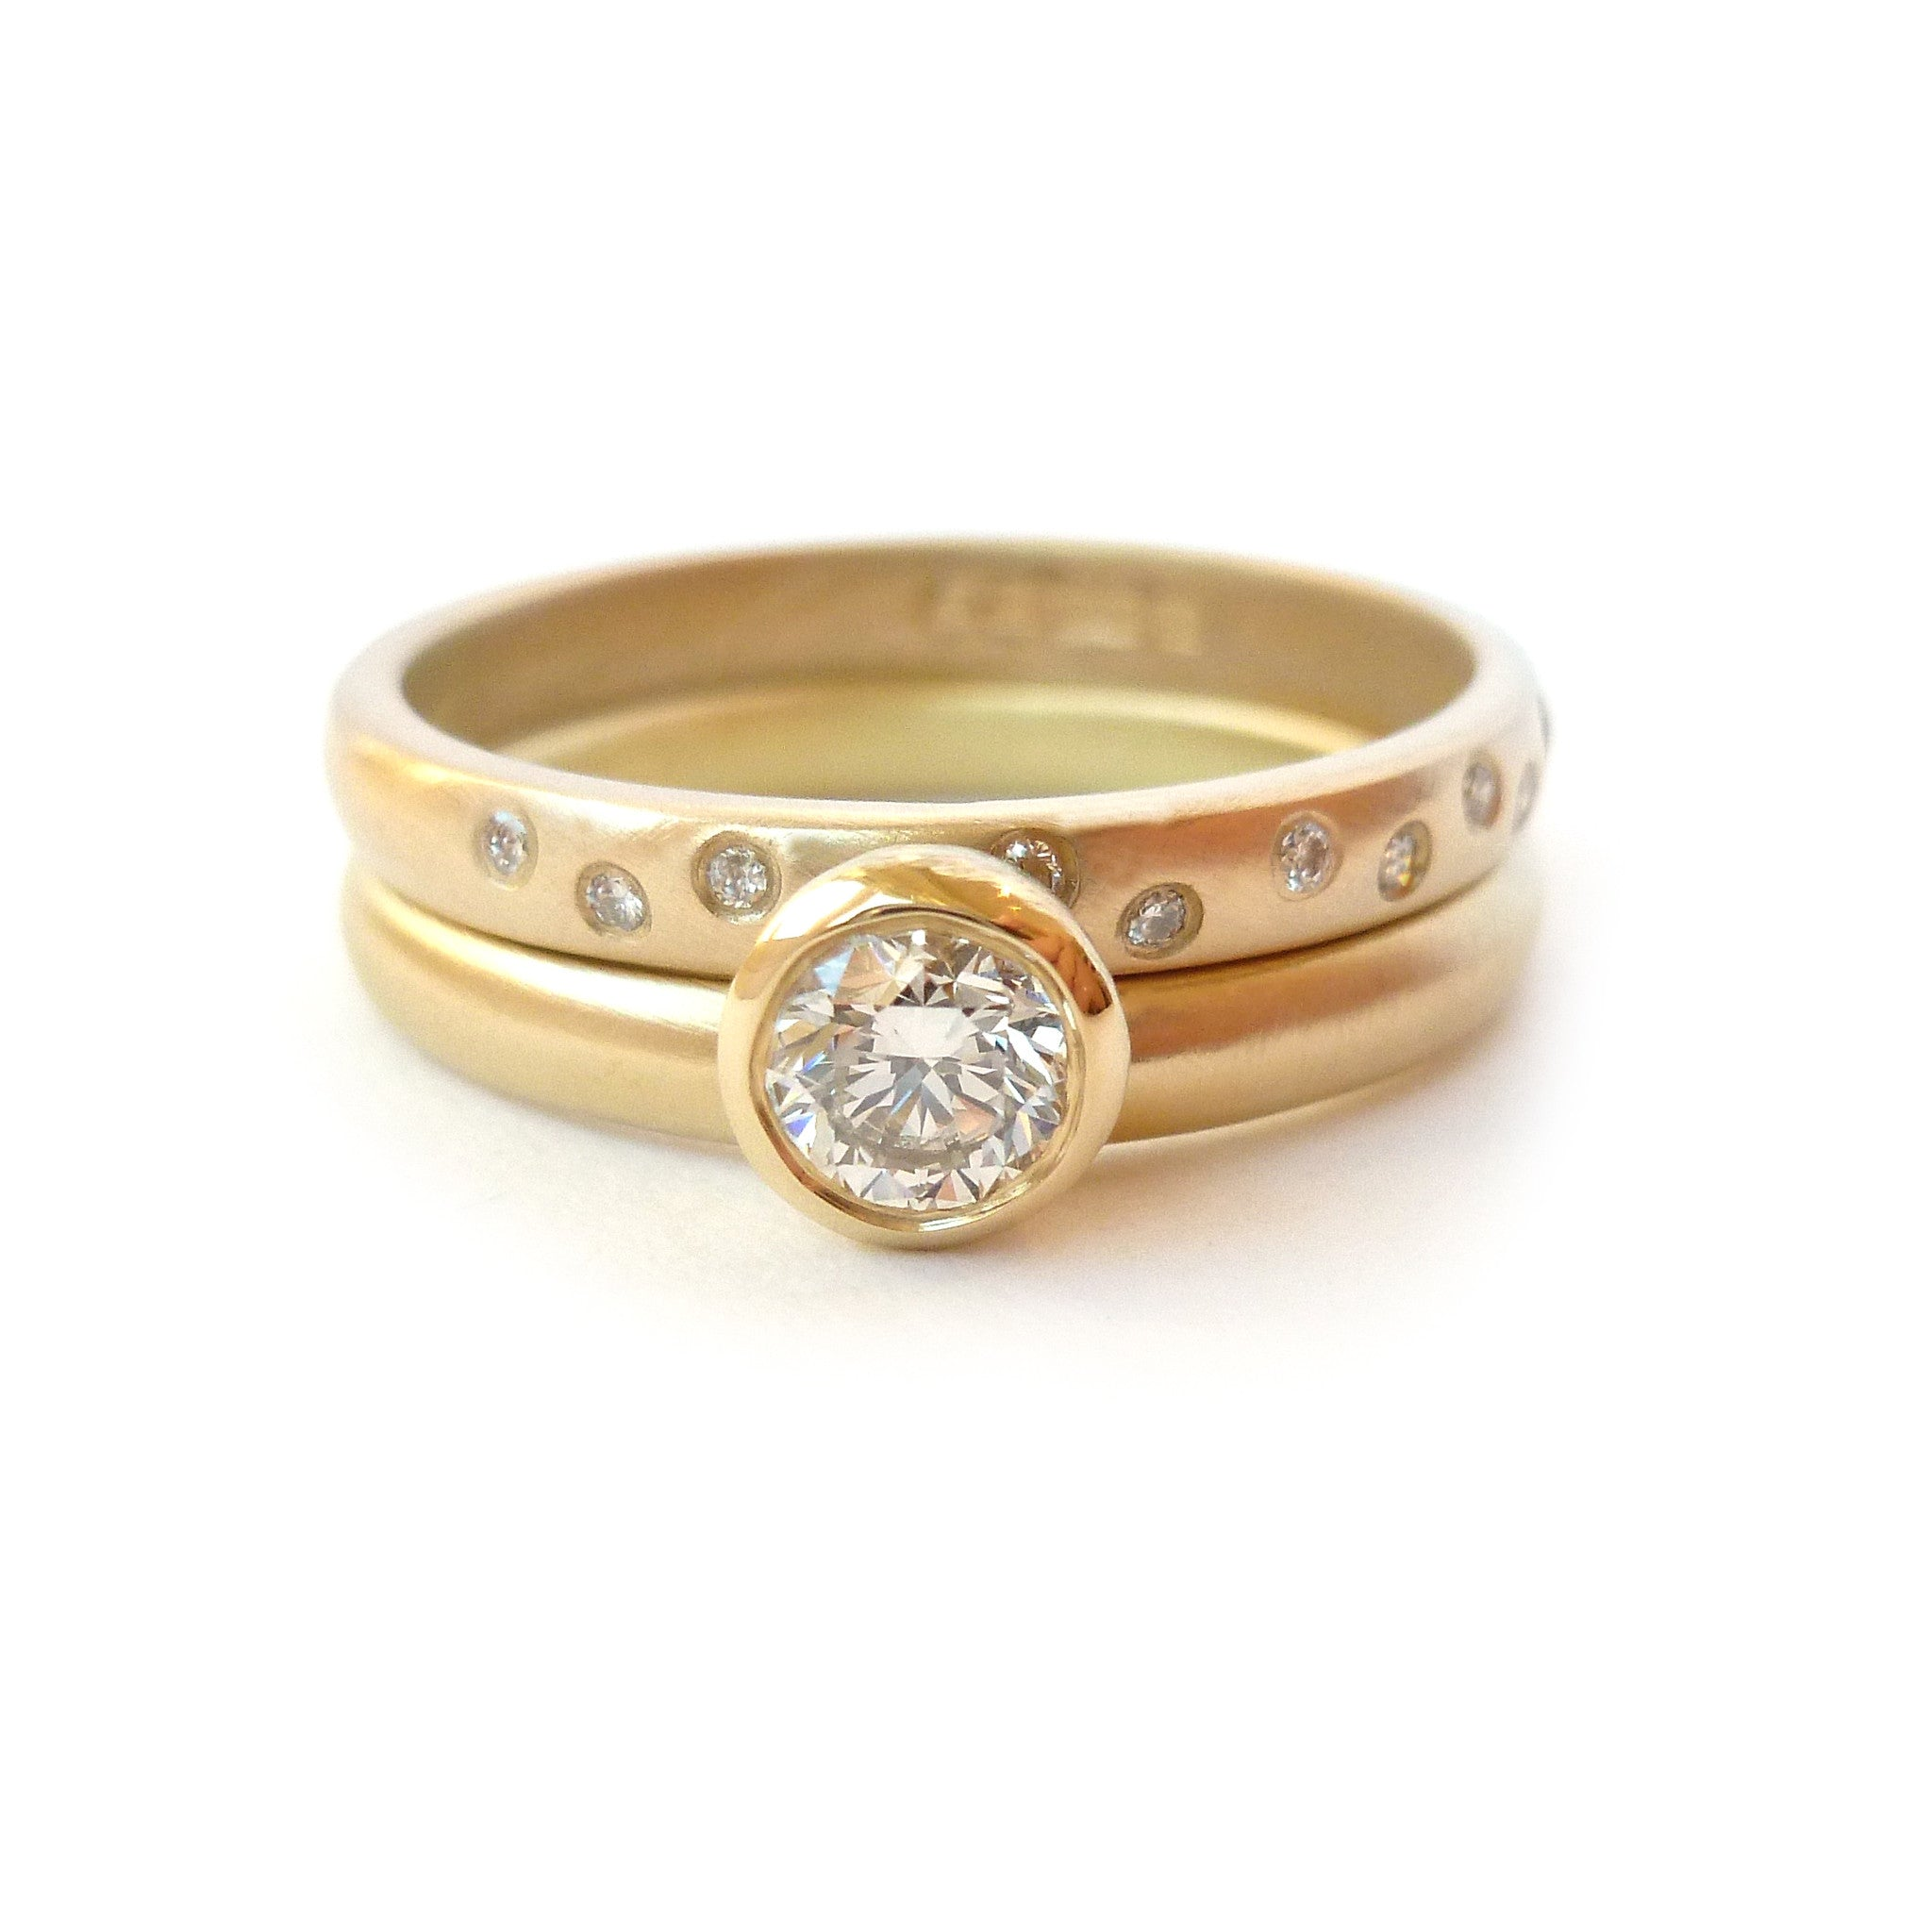 showcase rings cognac goldsmiths wedding engagement gold diamond oval with modern ring mccaul rose